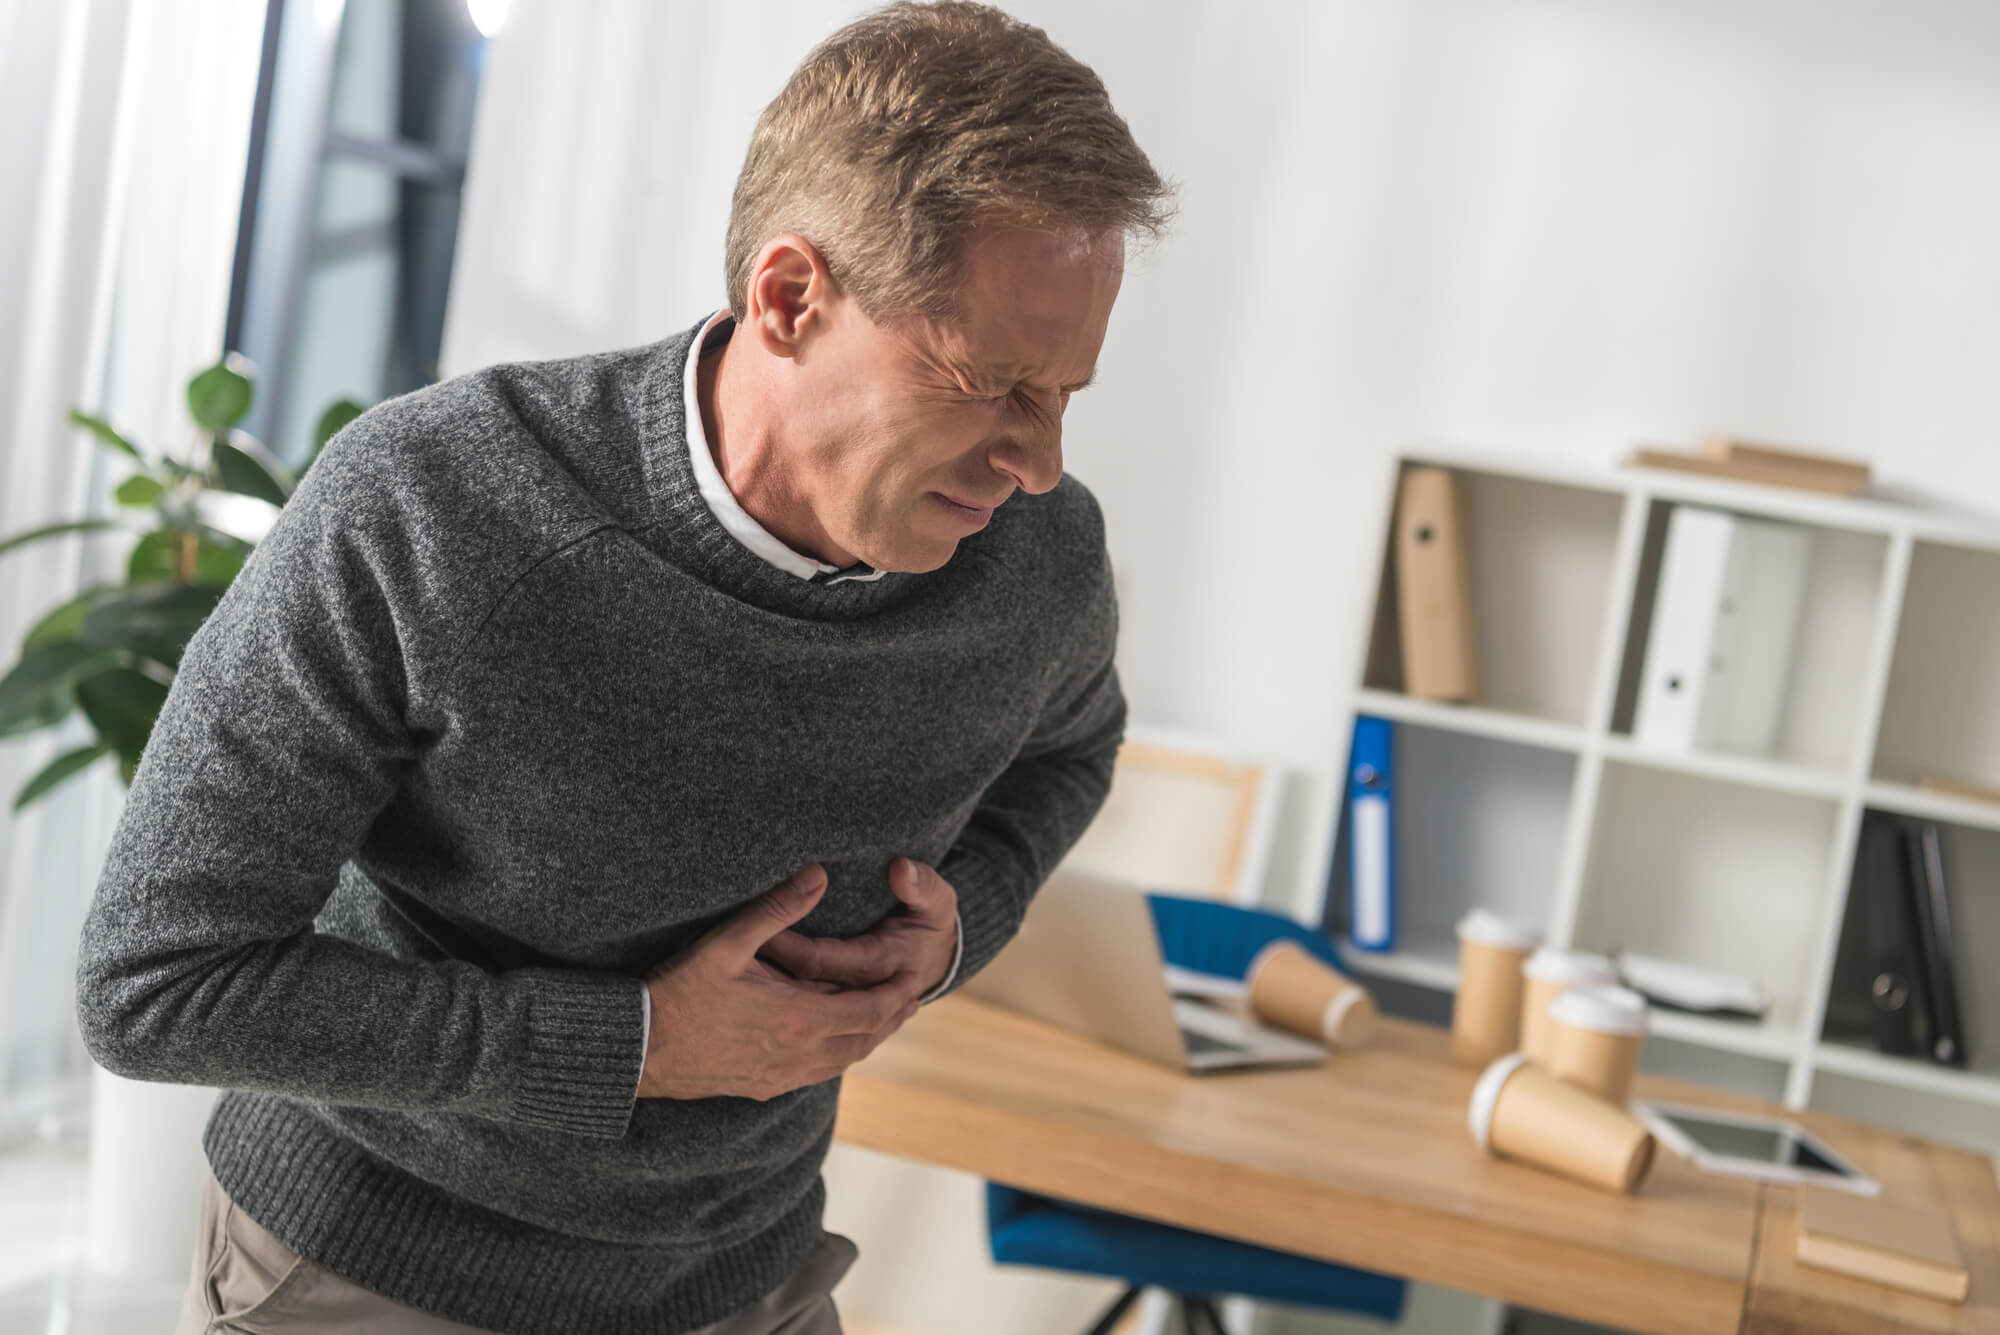 A man in a gray sweater clutches his chest, apparently from a heart attack. Research shows TRT is likely not the cause.